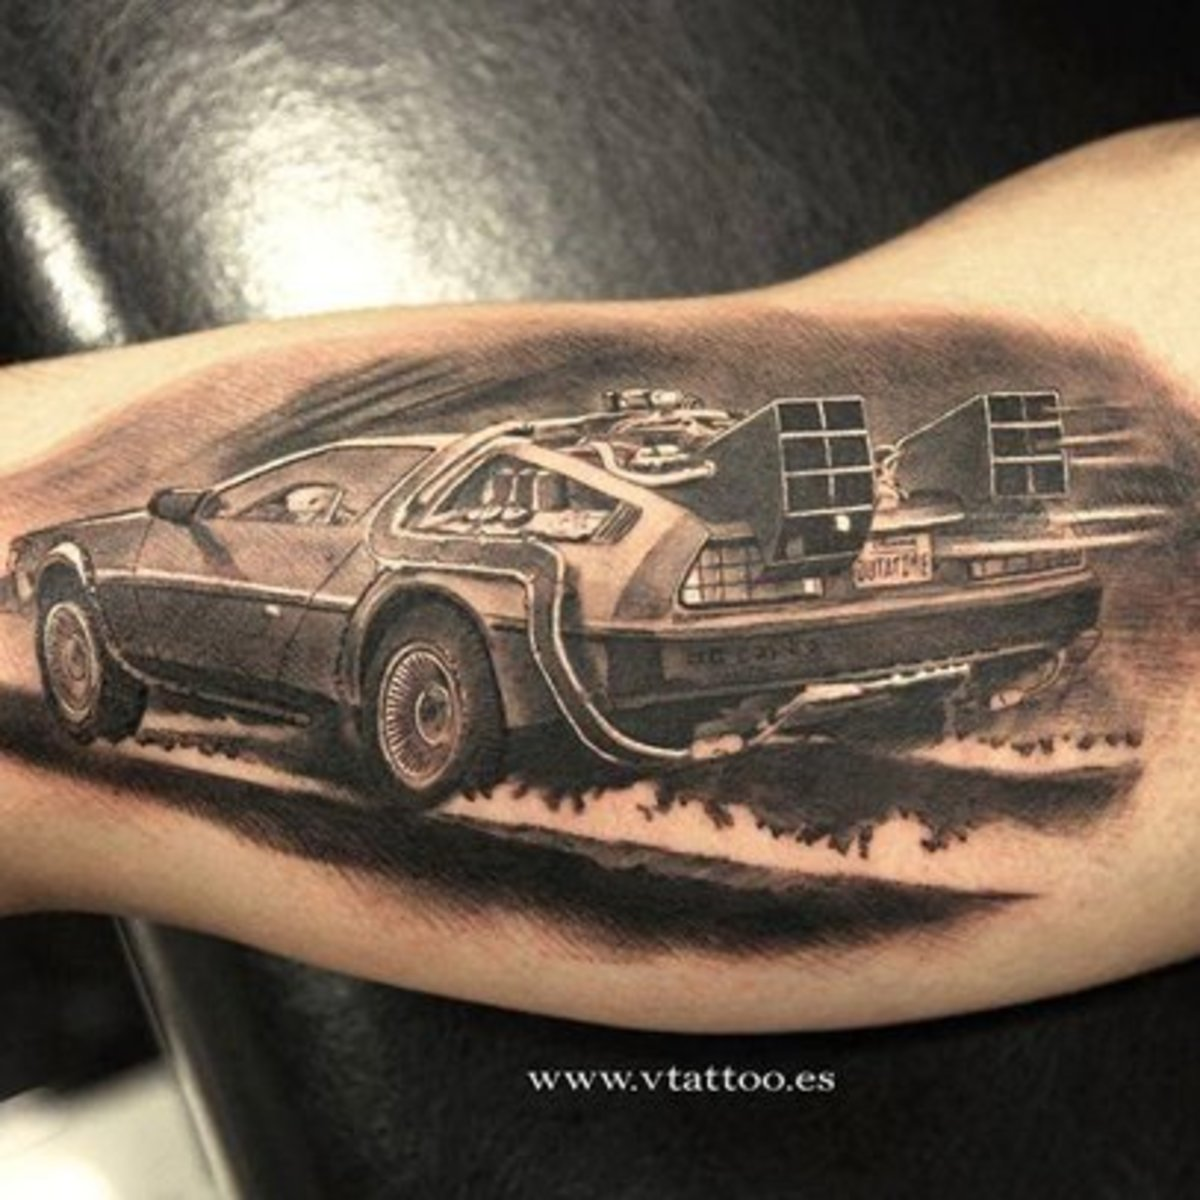 Back To The Future Tattoos Tattoo Ideas Artists And Models